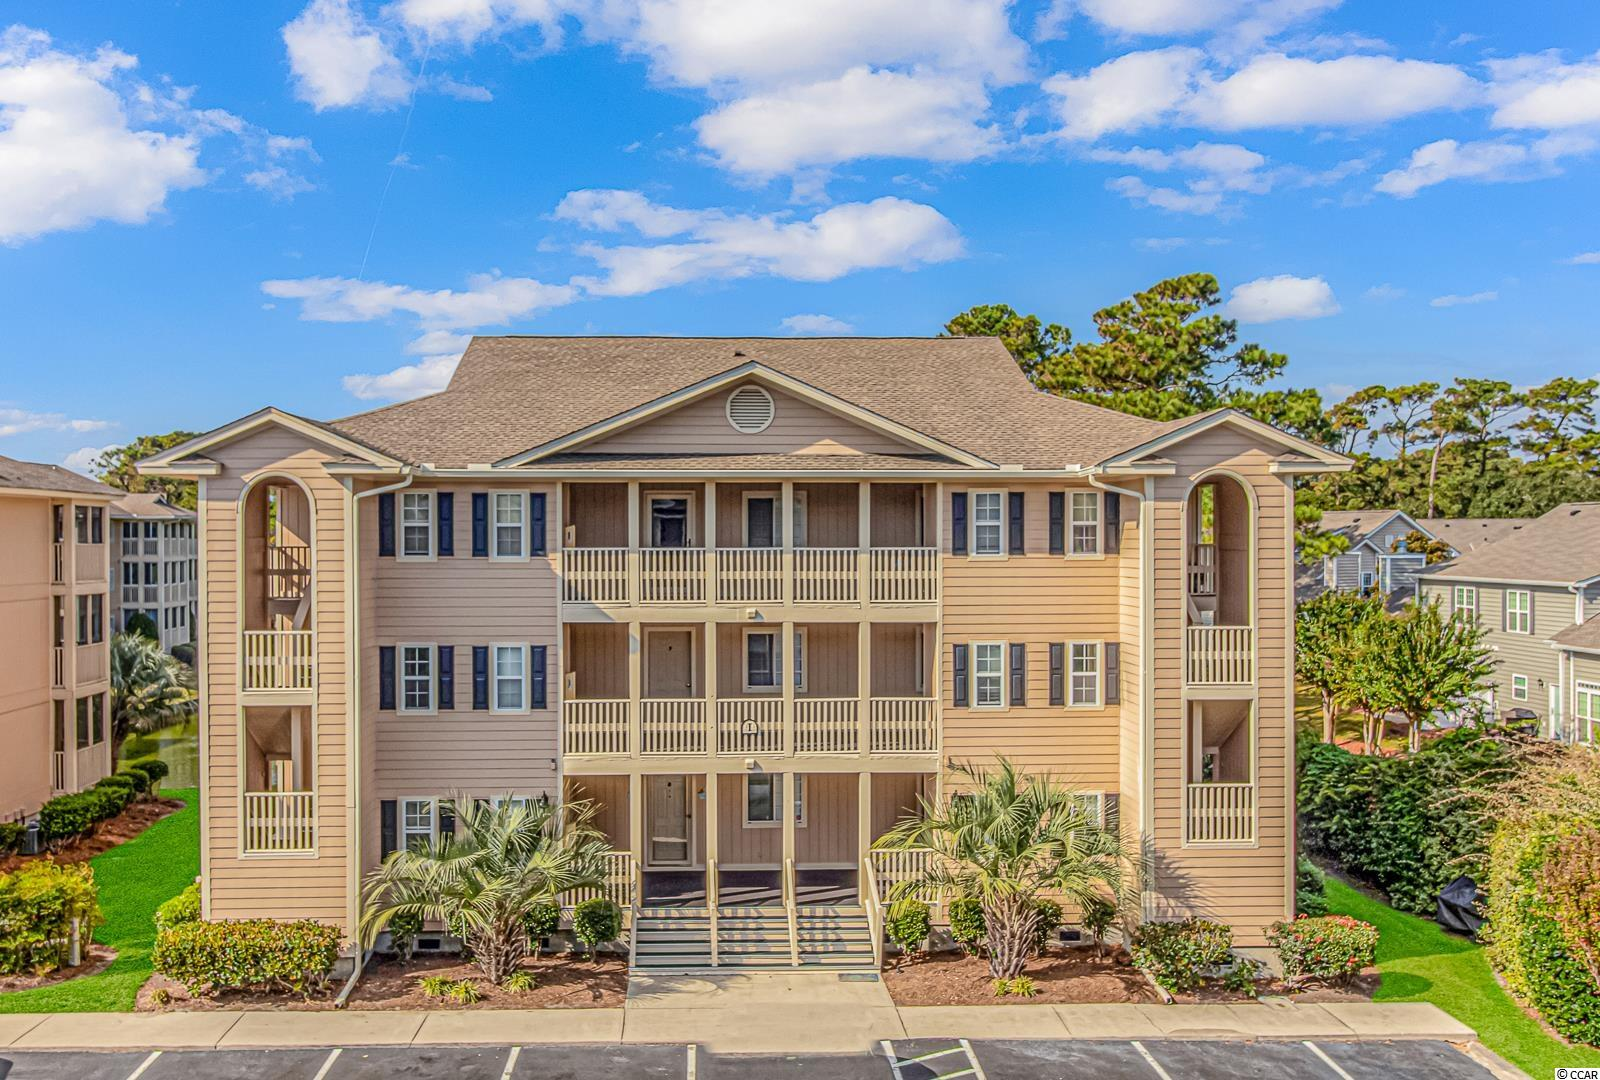 Welcome home to this inviting Cherry Grove condo at Tilghman Shores Ocean and Golf Resort just 2 blocks from the beautiful sandy beach!  Enjoy your day in the sun or sit and relax on your screened porch next to the pond with golf course views beyond.  There's a separate storage room just outside the front door to store your beach chairs and toys; leave that sand outside!  The kitchen features granite counters, a pantry, and a breakfast bar and is open to the living area and screened porch beyond.  The washer and dryer, approximately 1 year old, are included along with all the furnishings you see.  The floors in the living area are hardwood, with tile in the wet areas and carpet in the bedroom.  The bathroom has been recently updated with new vanity and high rise toilet, with adorable beachy beadboard wainscoting accent.  This cozy one bedroom, one bath home can be your perfect beach getaway; it's also well suited for rental income.  This is a top floor unit with no noisy neighbors above.   Be sure to check out the large pool and hot tub, and there's a grill station and gazebo on the grounds too.  Schedule your showing today!